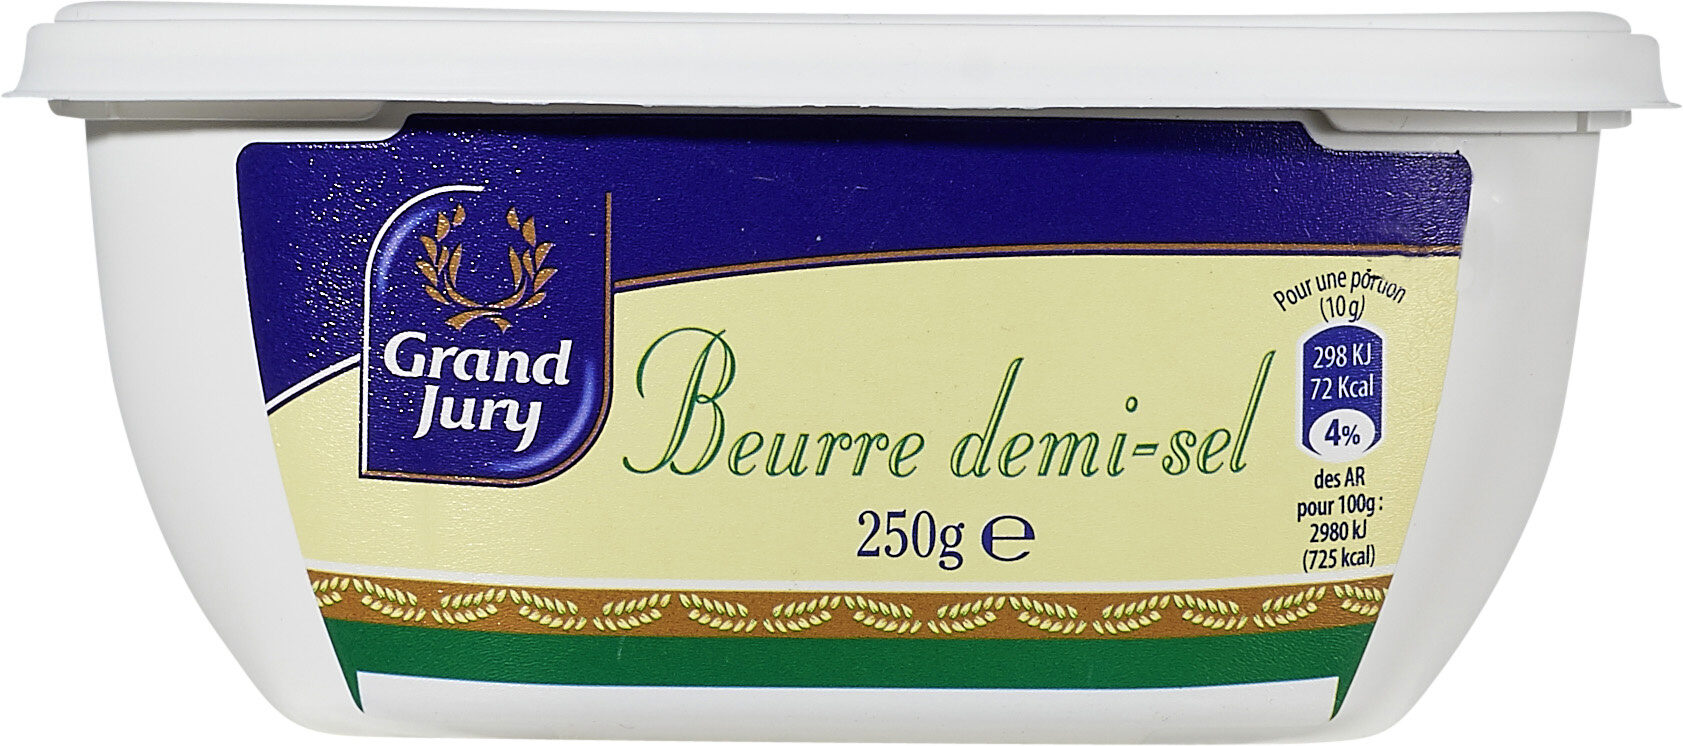 Beurre demi-sel - Product - fr